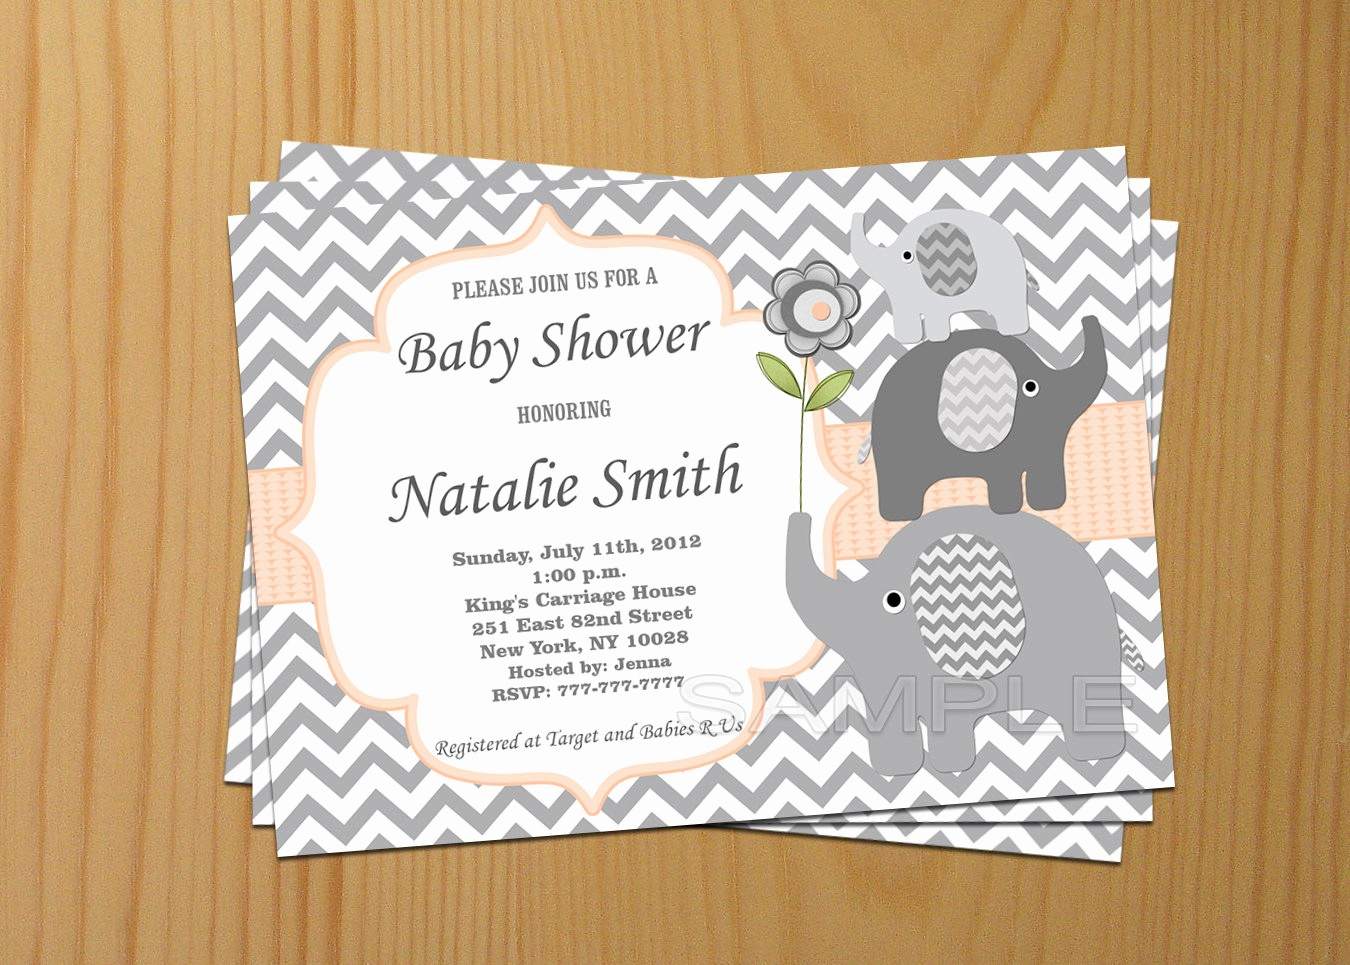 Baby Shower Invitation List Template Best Of Able Baby Shower Invitations Downloadable Baby